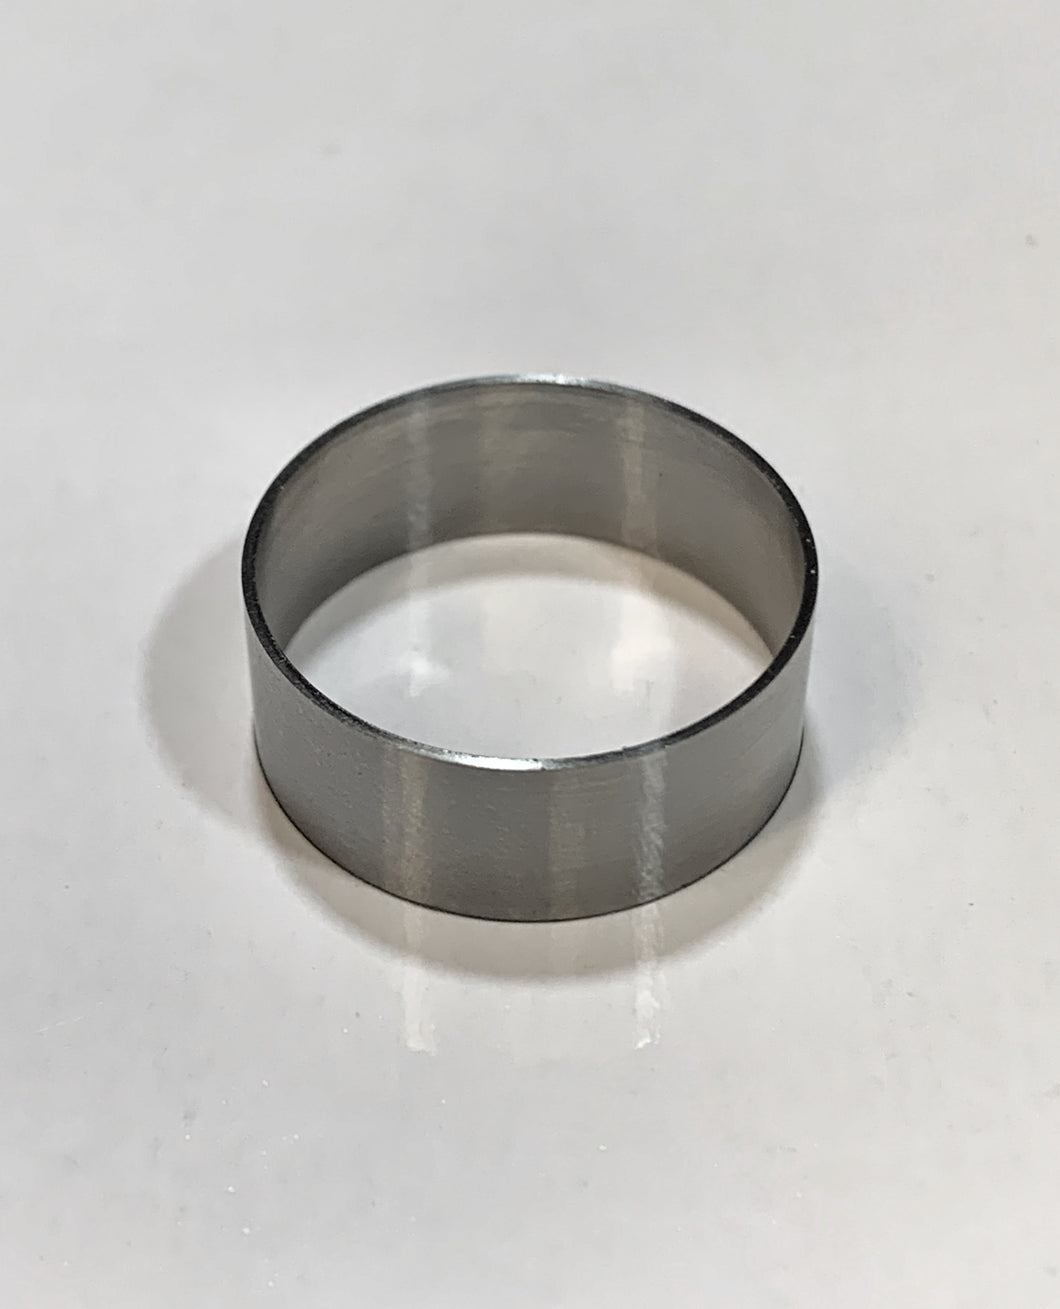 Titanium spacer for UV